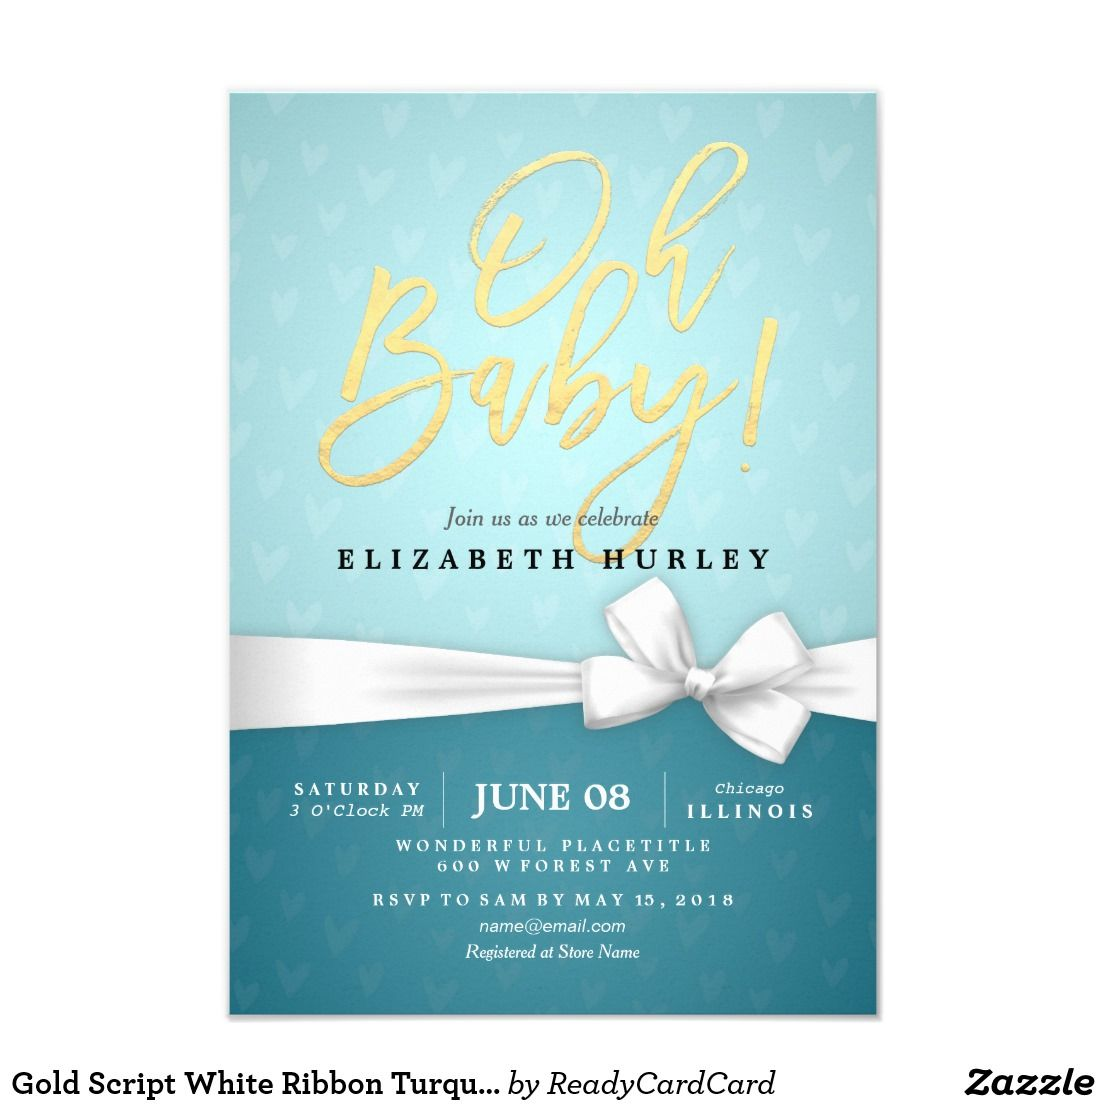 Gold Script White Ribbon Turquoise Baby Shower Card  Turquoise